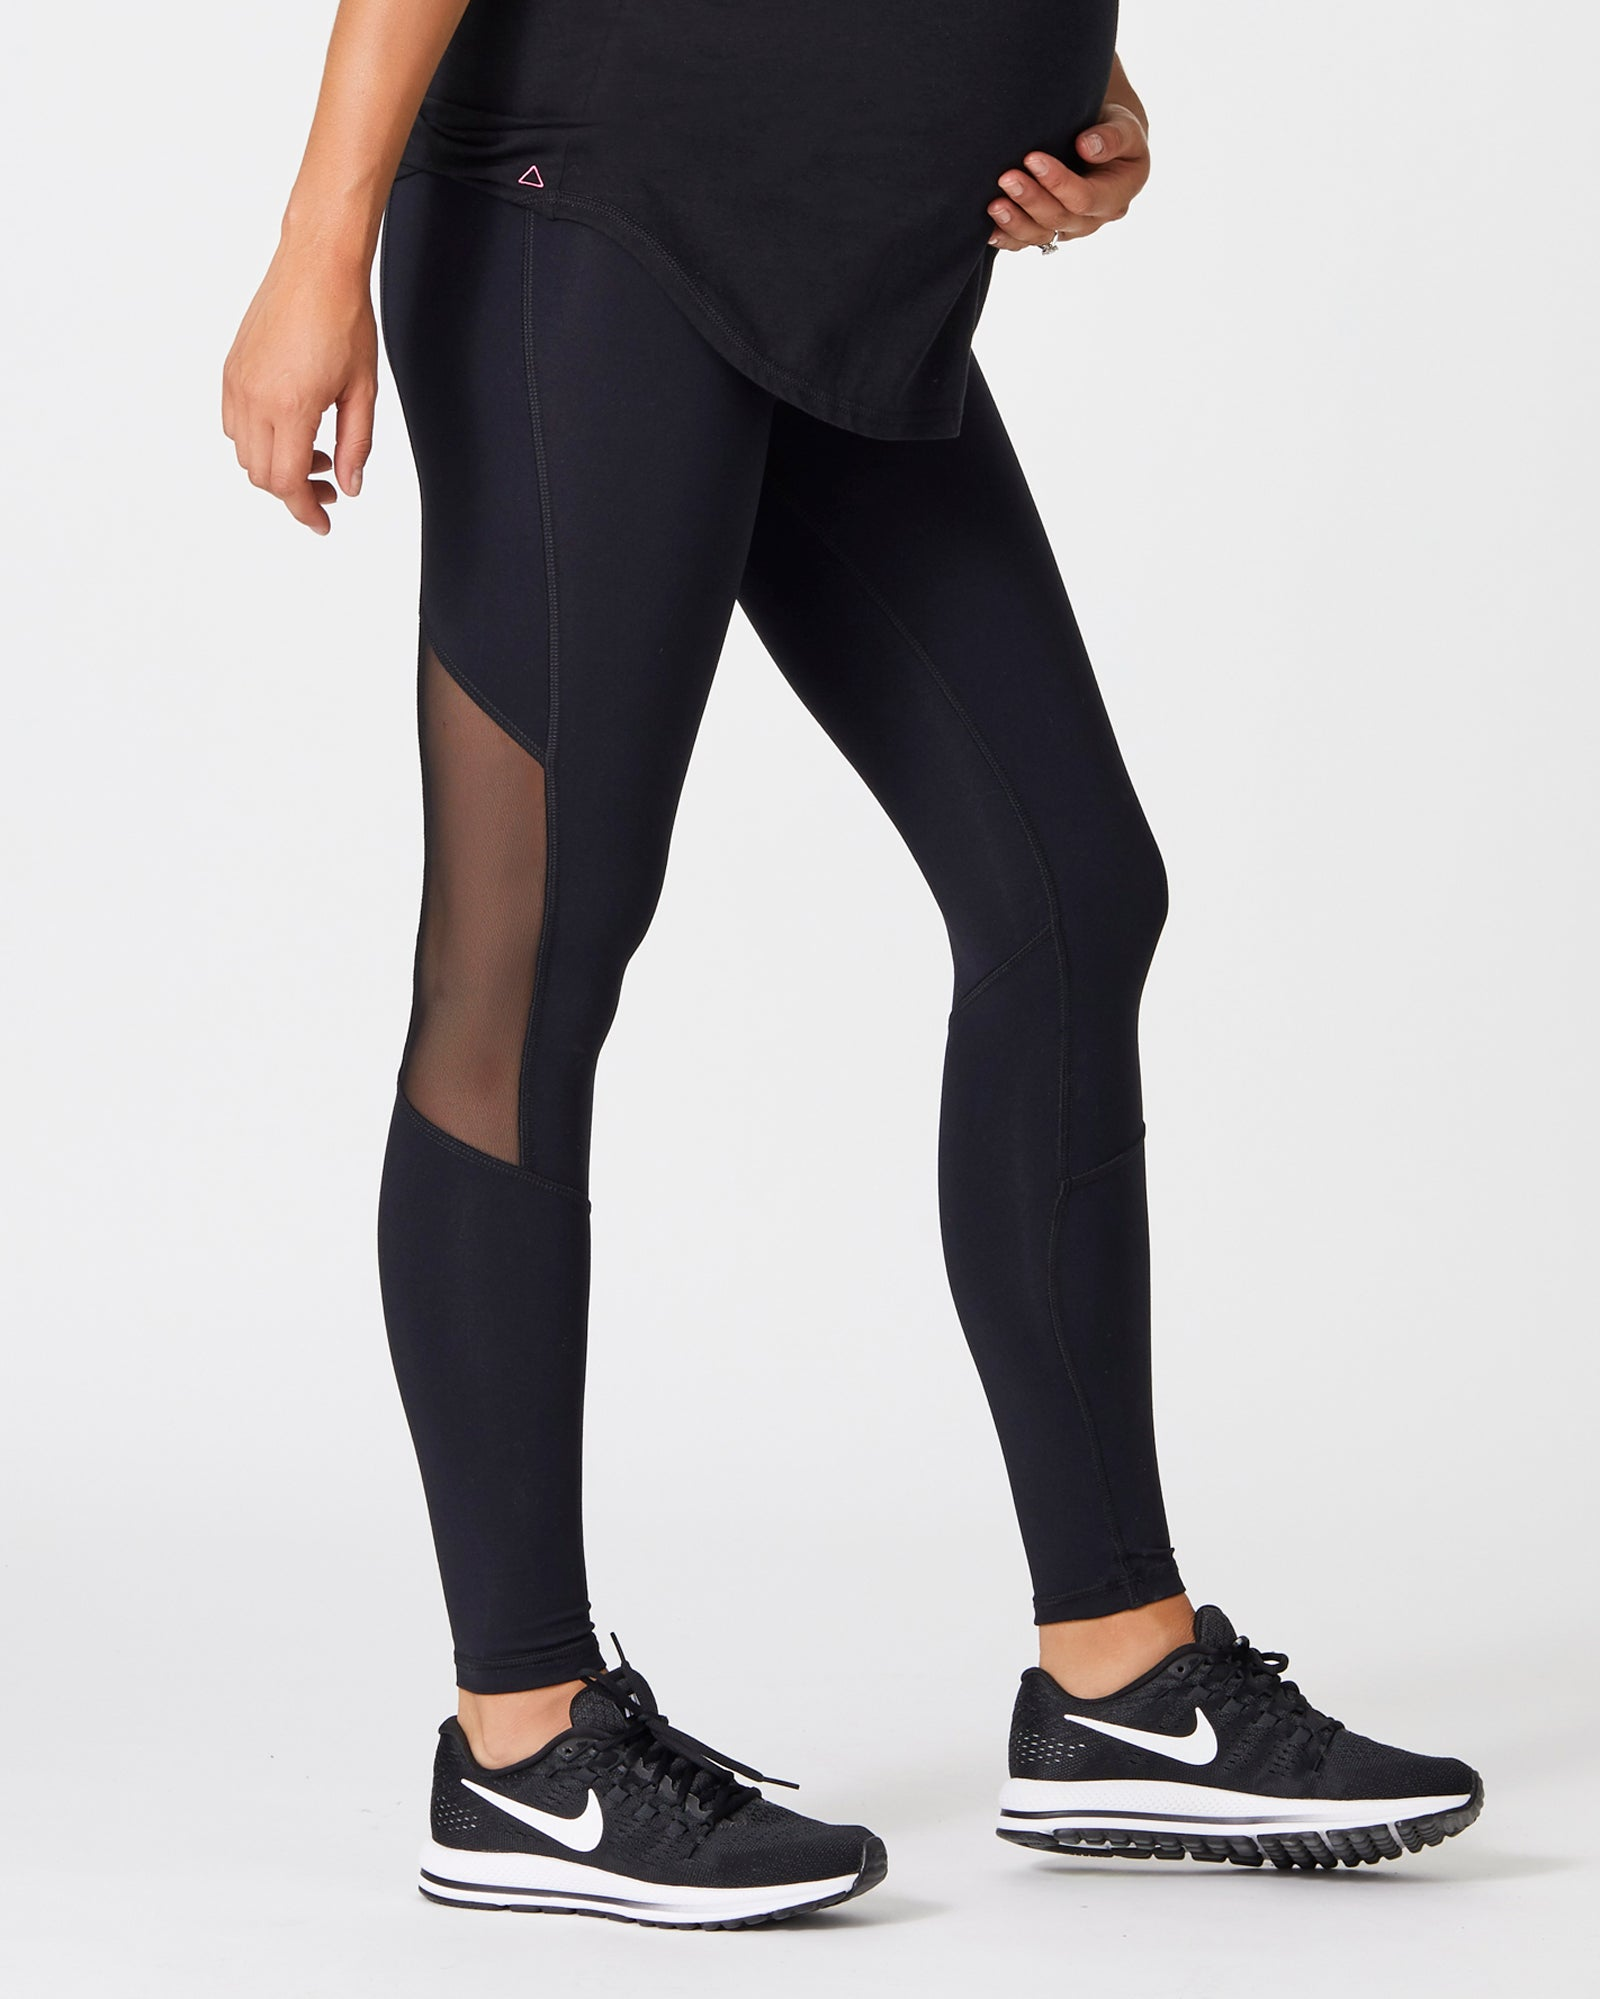 Active X PIAP Performance Leggings